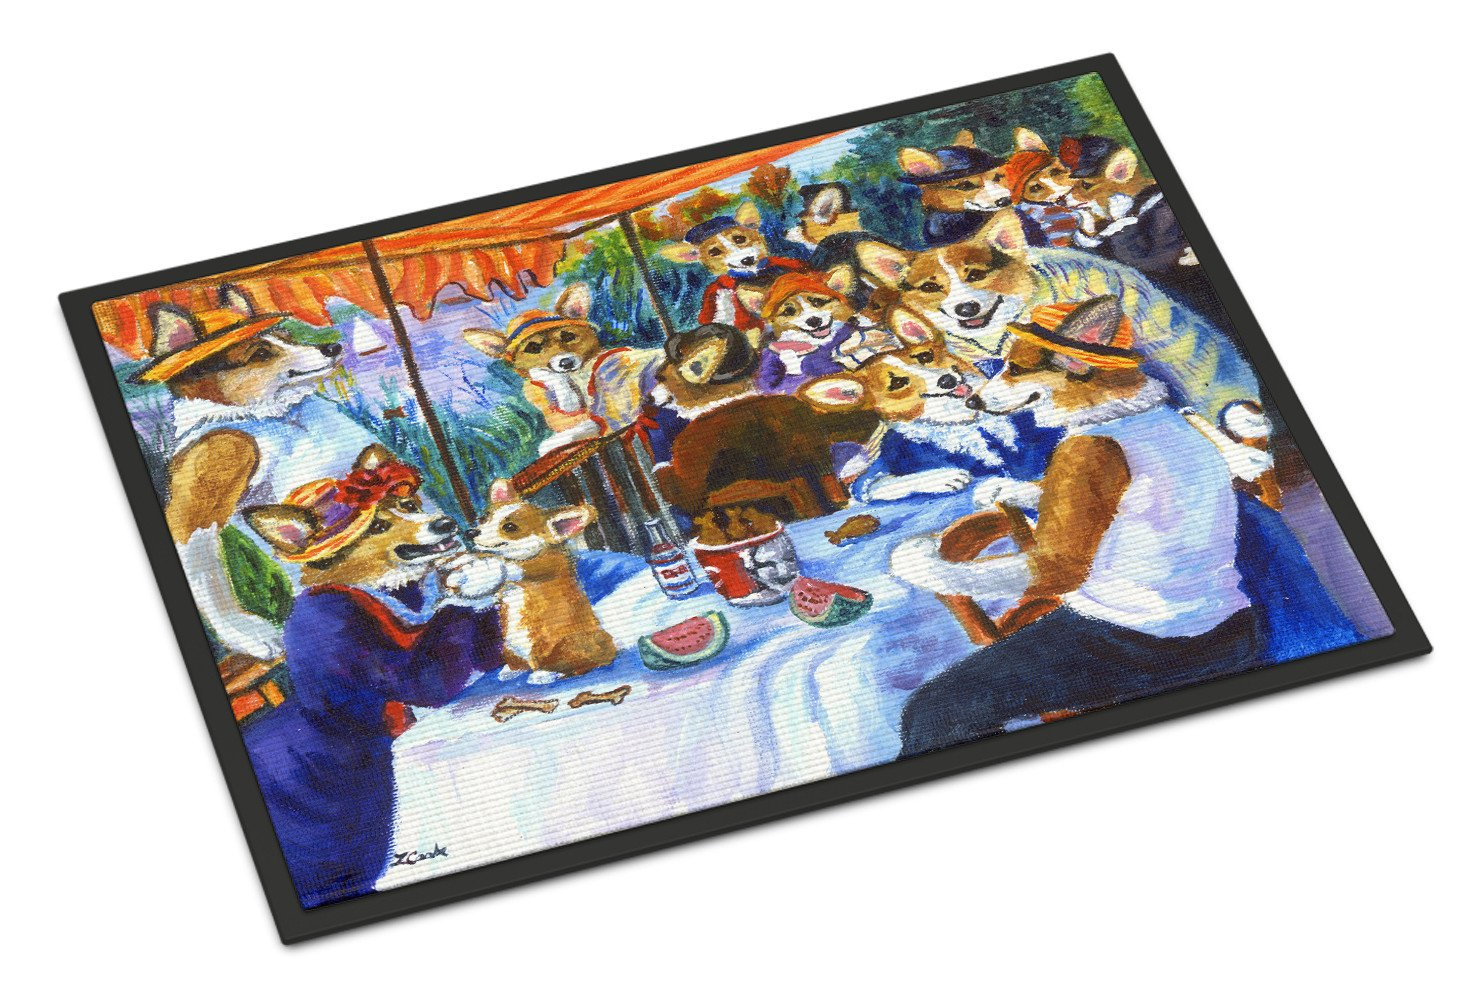 Corgi Boating Party Indoor or Outdoor Mat 18x27 7321MAT - the-store.com